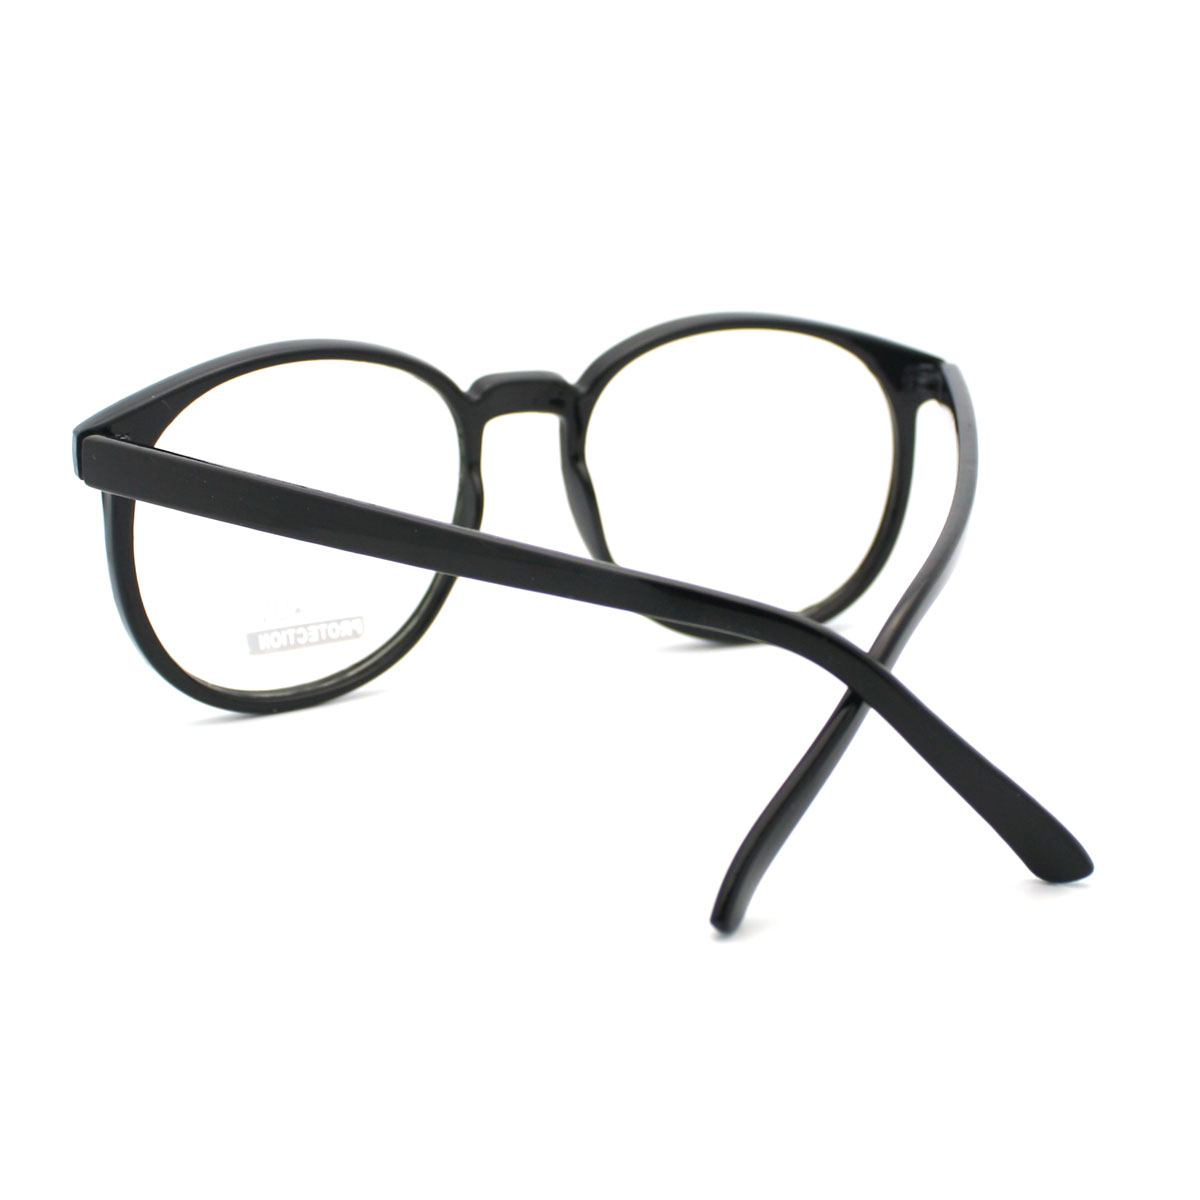 Large Thin Frame Glasses Matte Black : Black Geeky Nerd Thin Plastic Frame Large Round Clear Lens ...